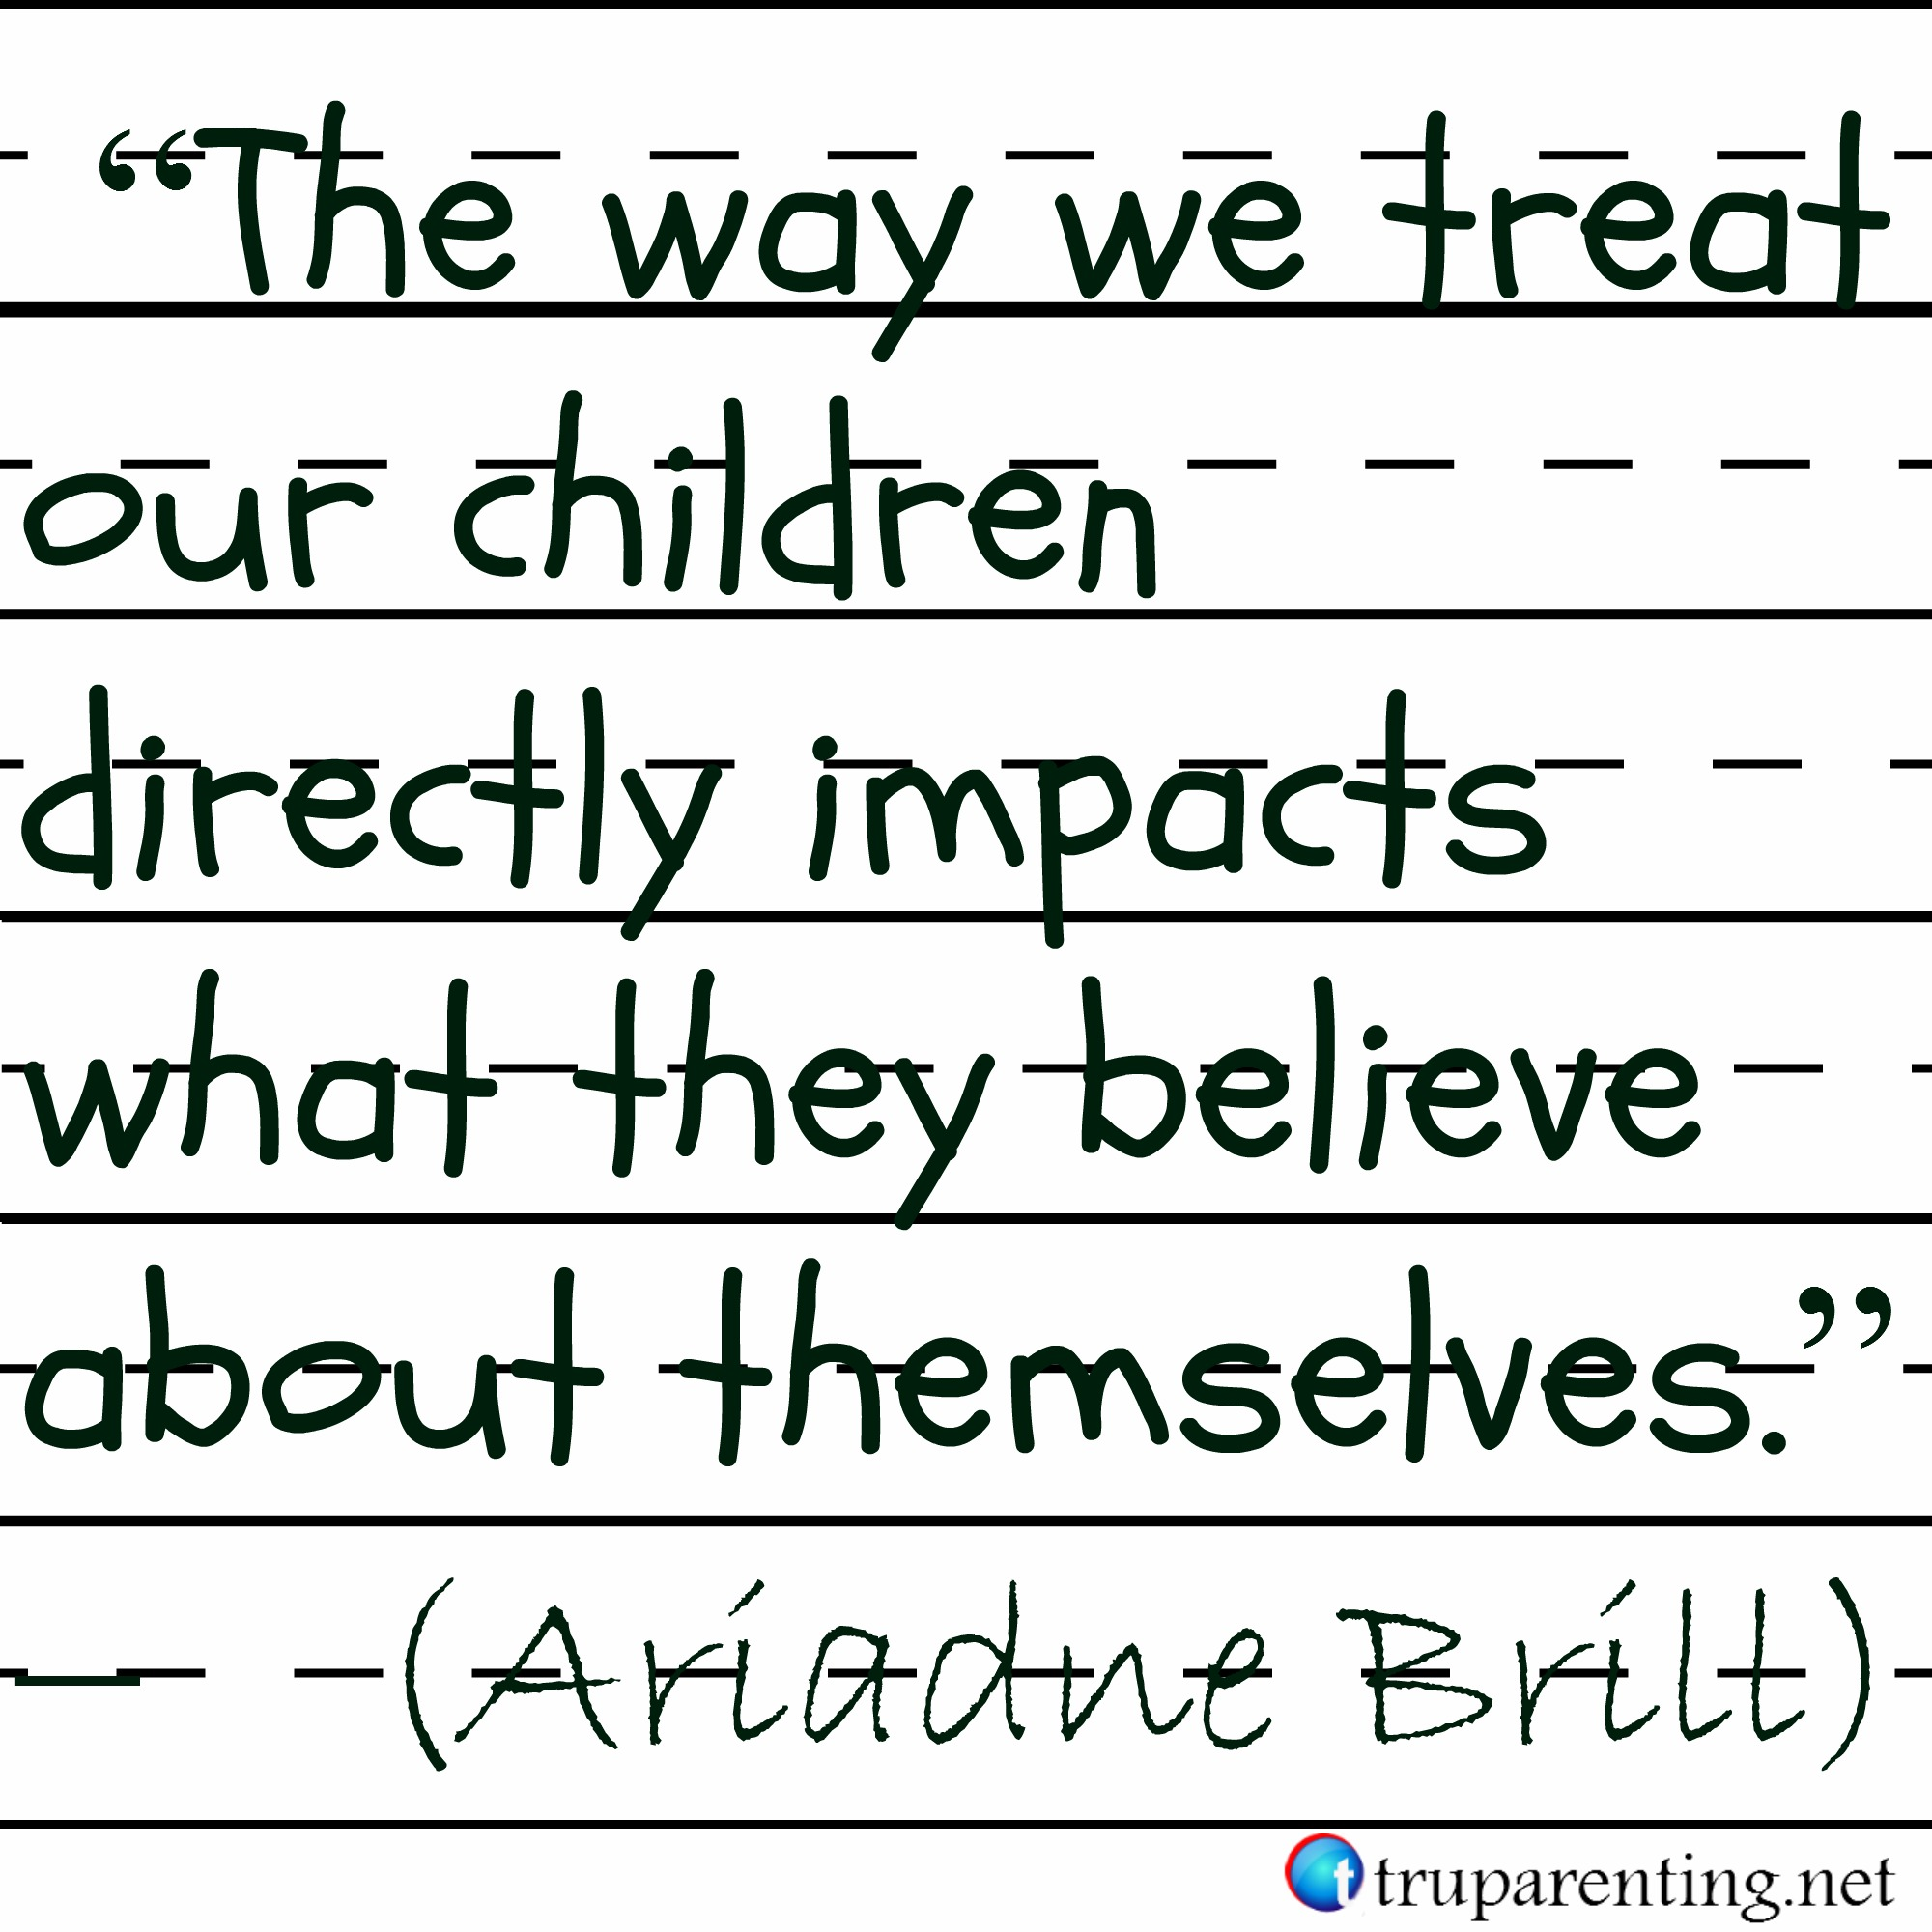 Quotes On Children 30 Inspiring Parenting Quotes That Teach Tru Parenting Principles